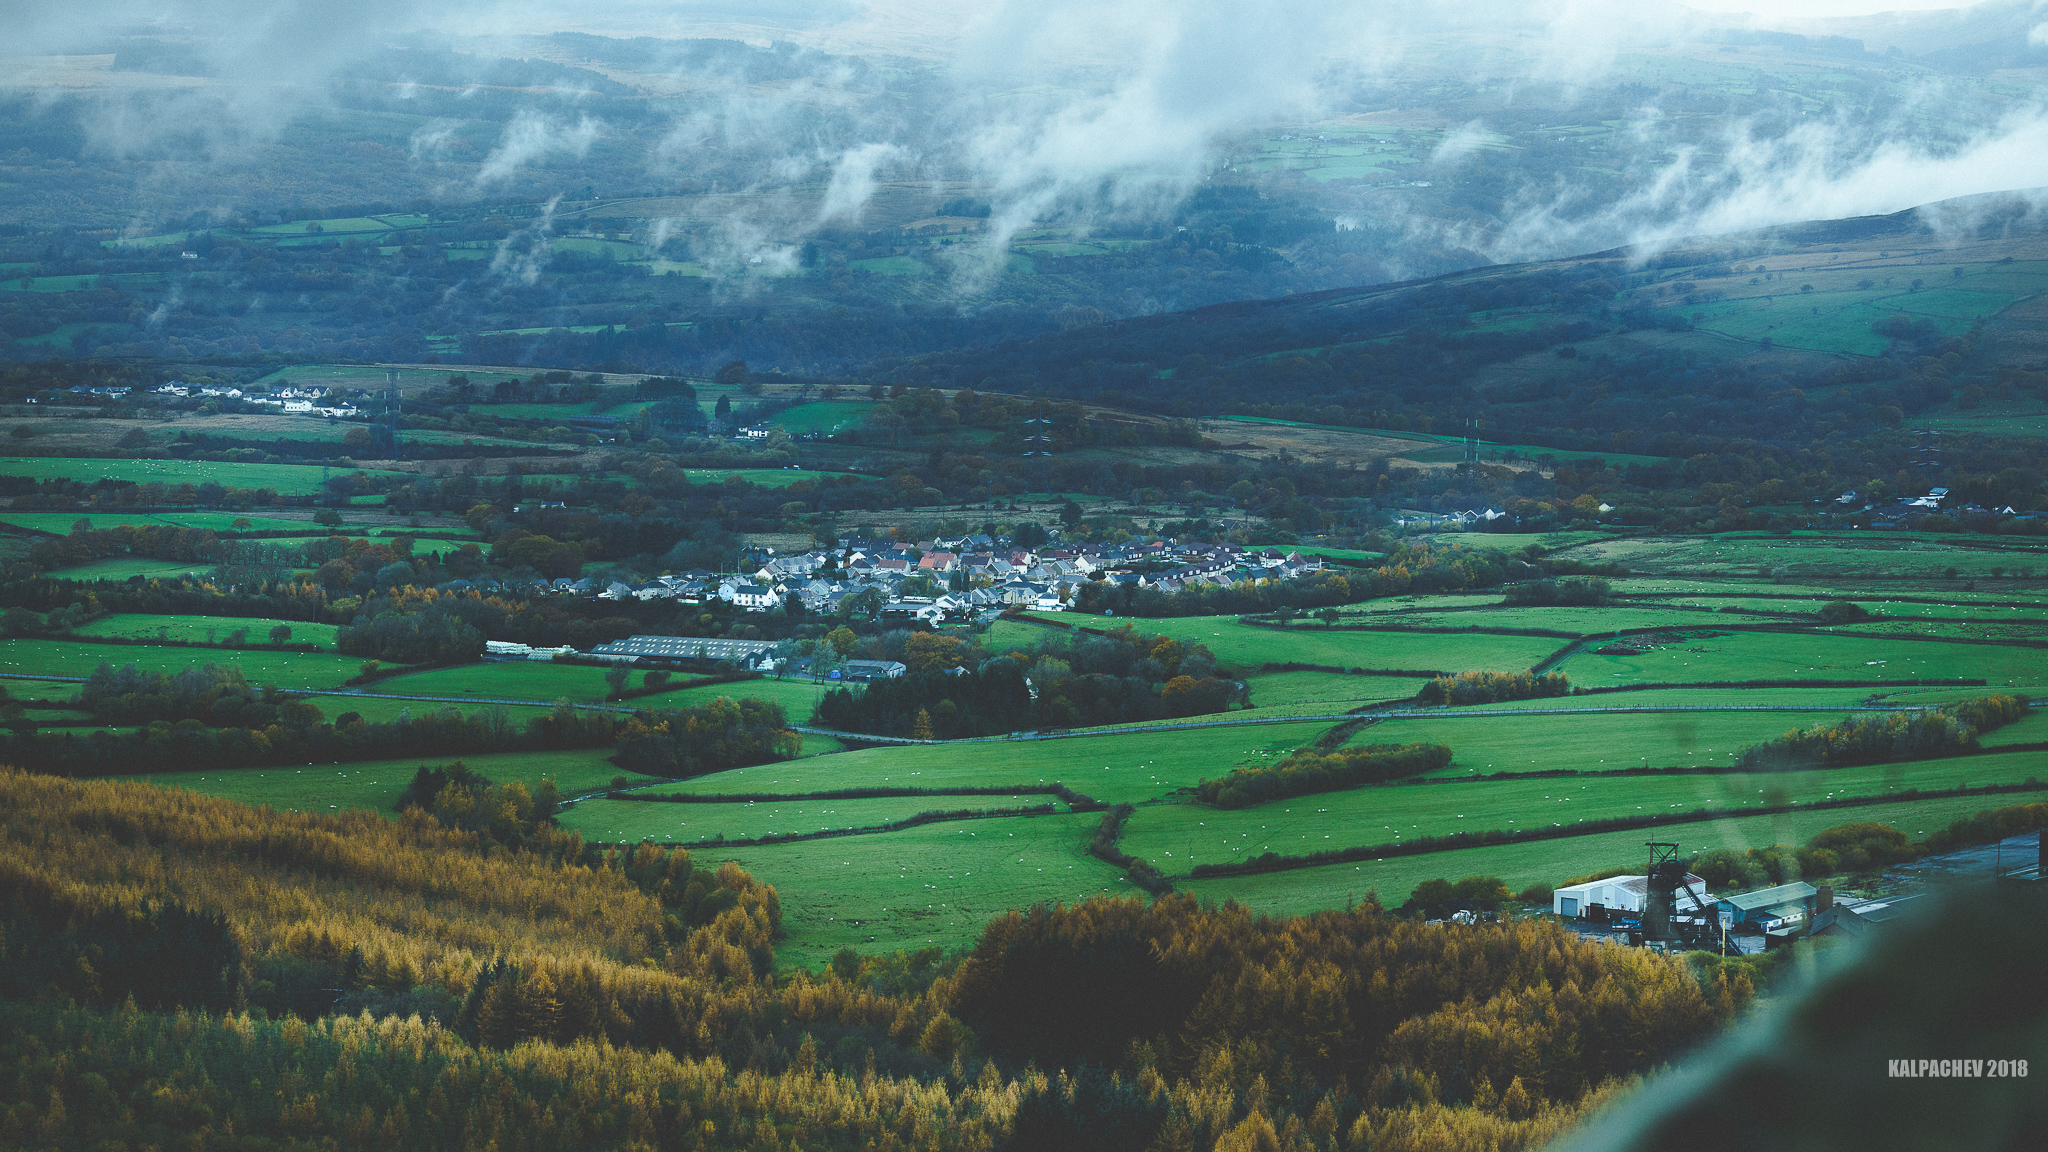 Rhigos – Rhondda valleys, Wales